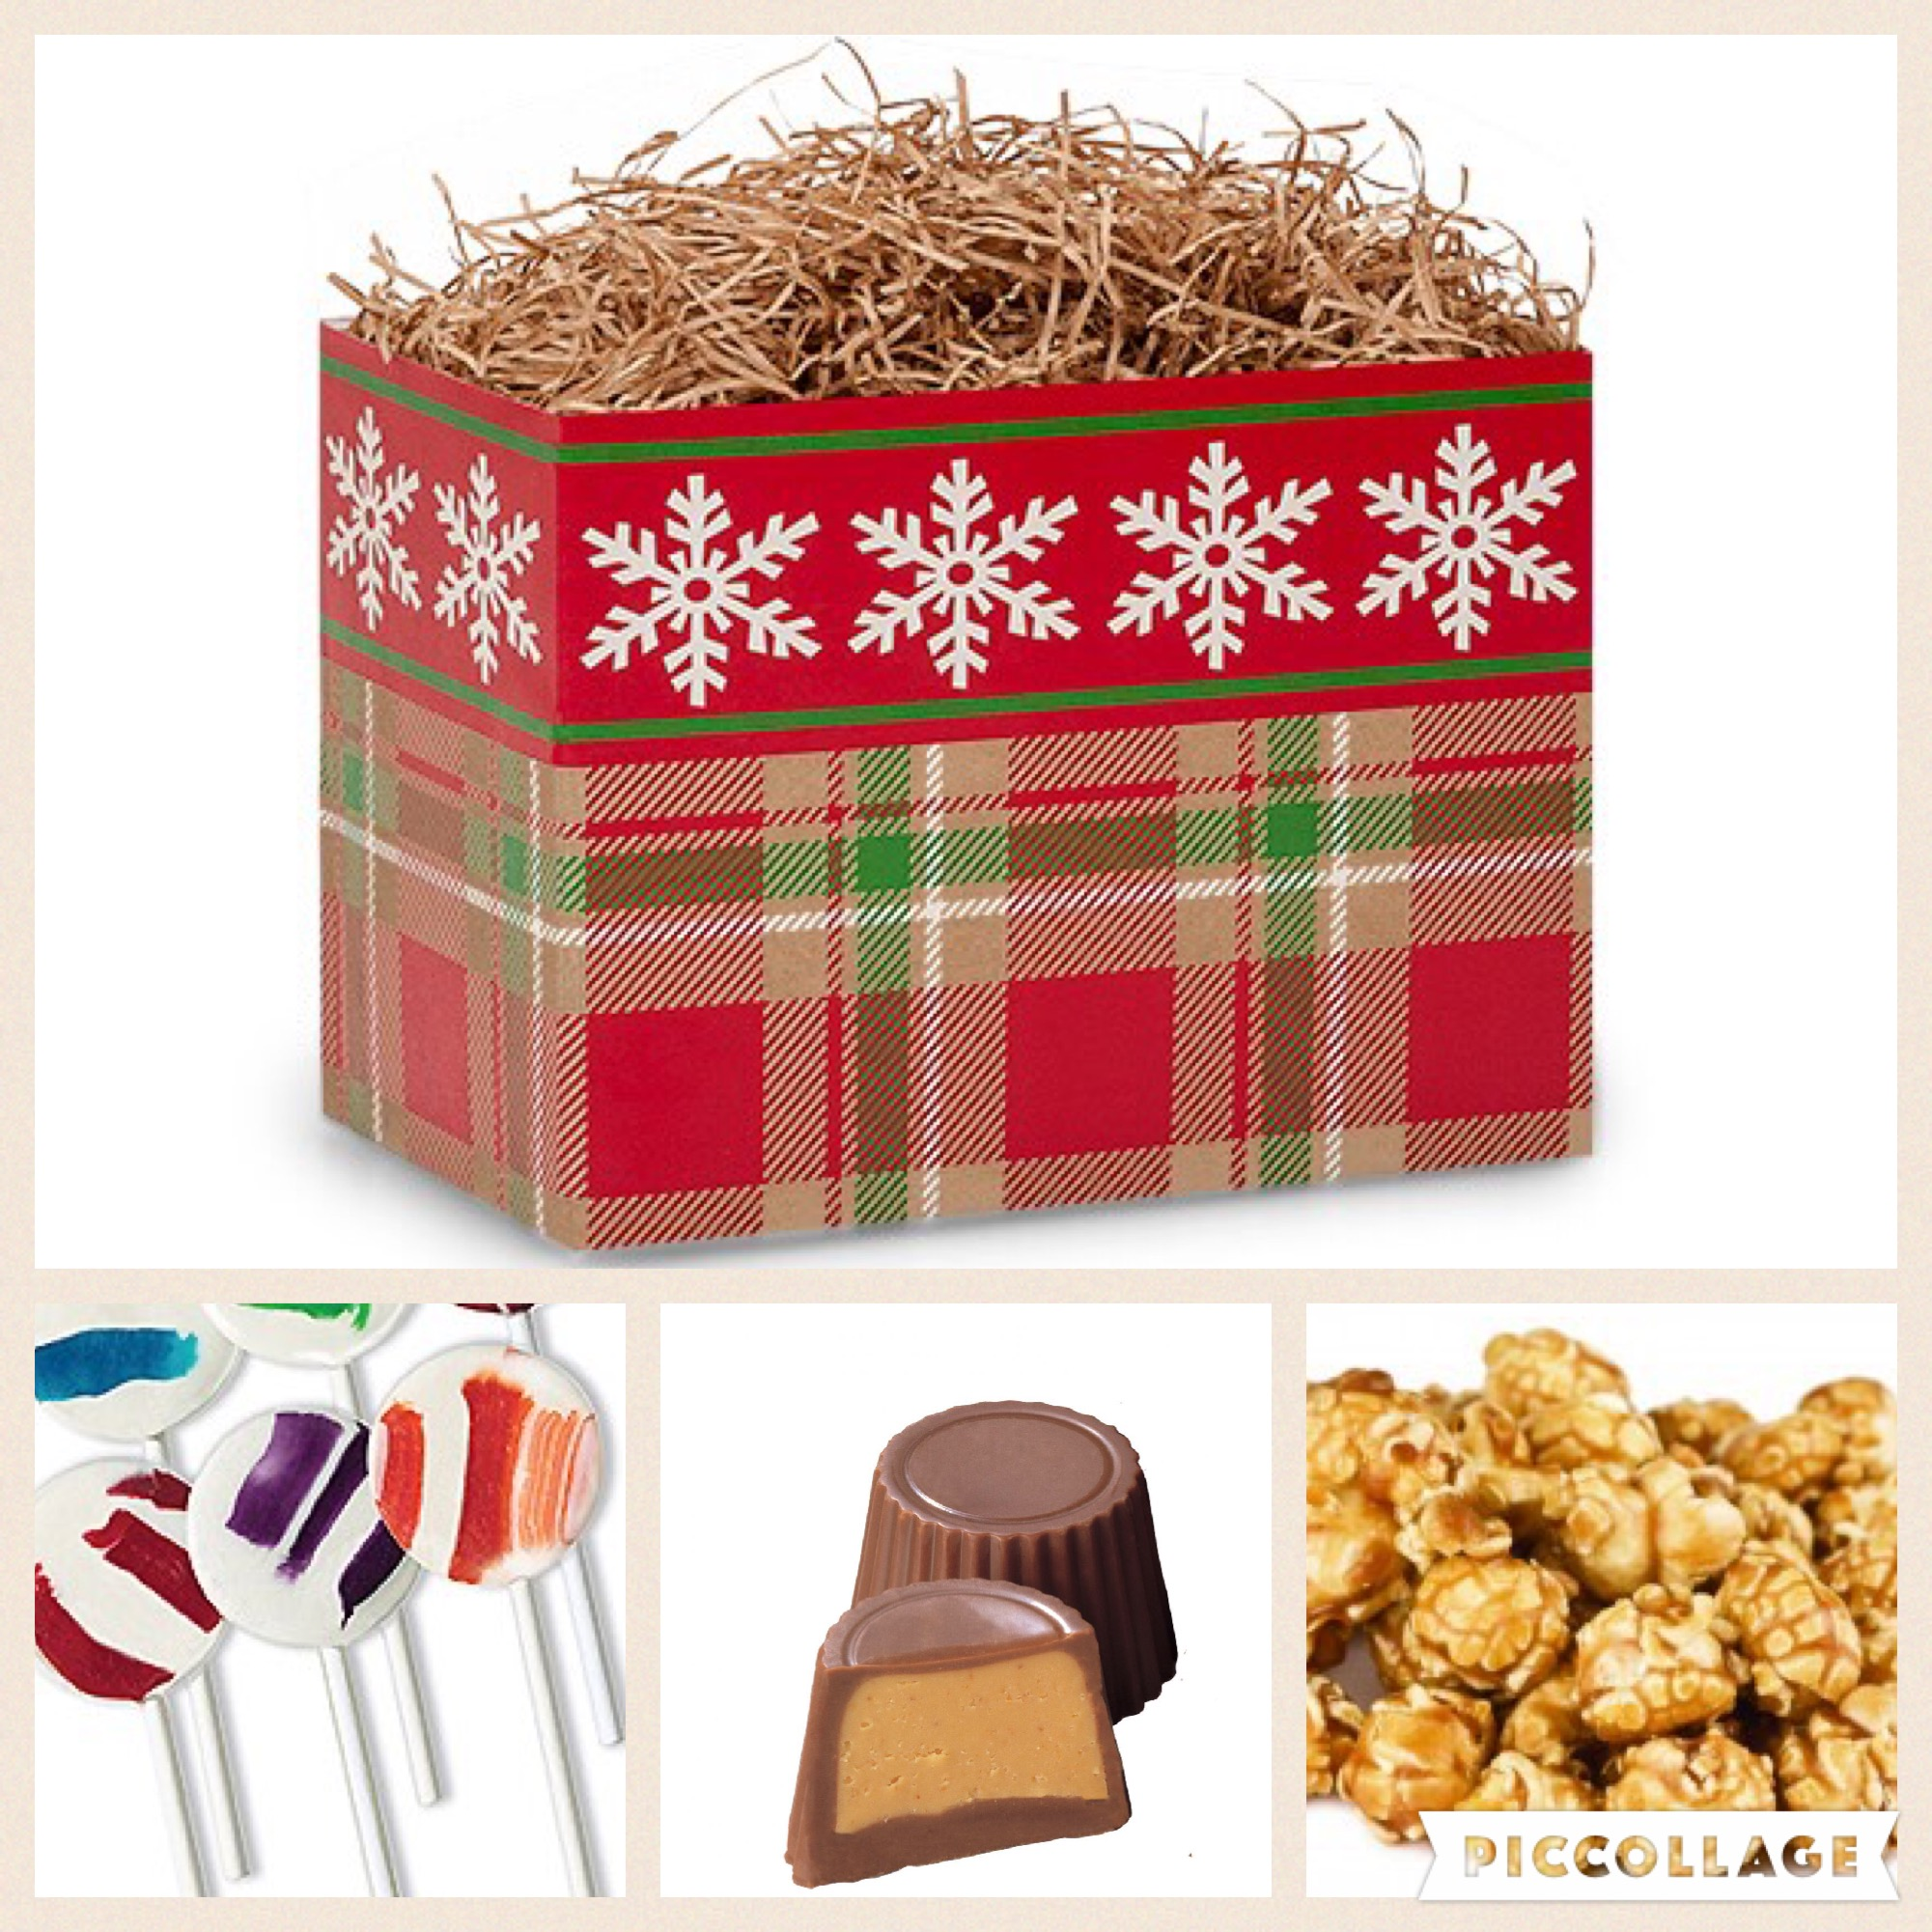 Sugar Free Holiday Gifts at Diabetic Candy.com